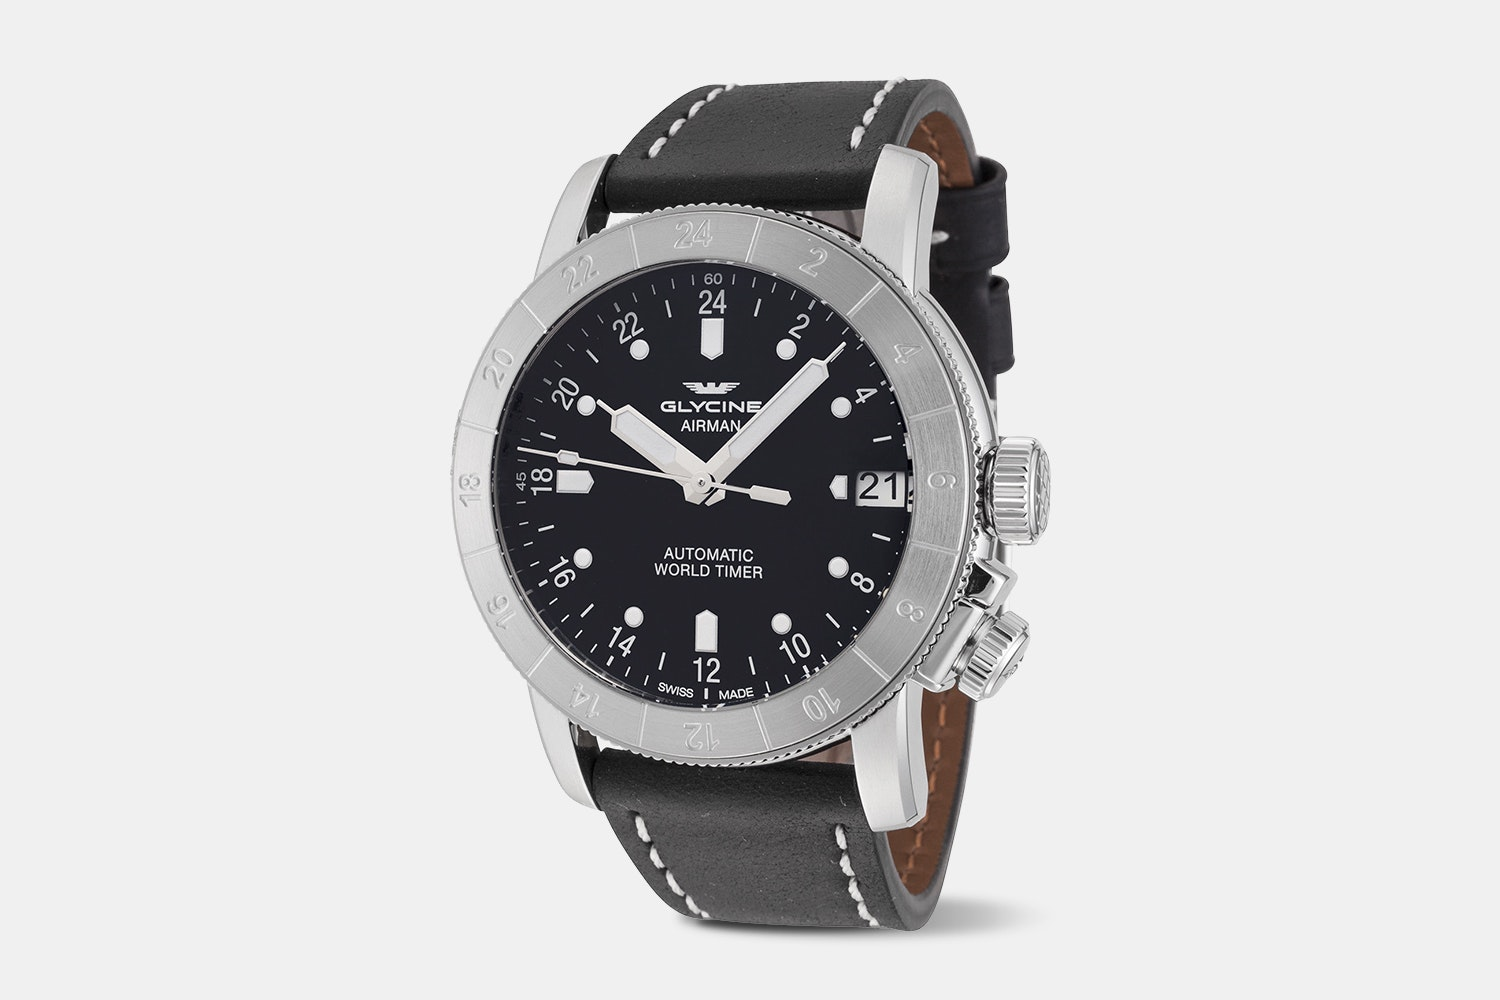 Airman 46 - GL0135 | 46 mm, Black Dial, Black Leather Strap